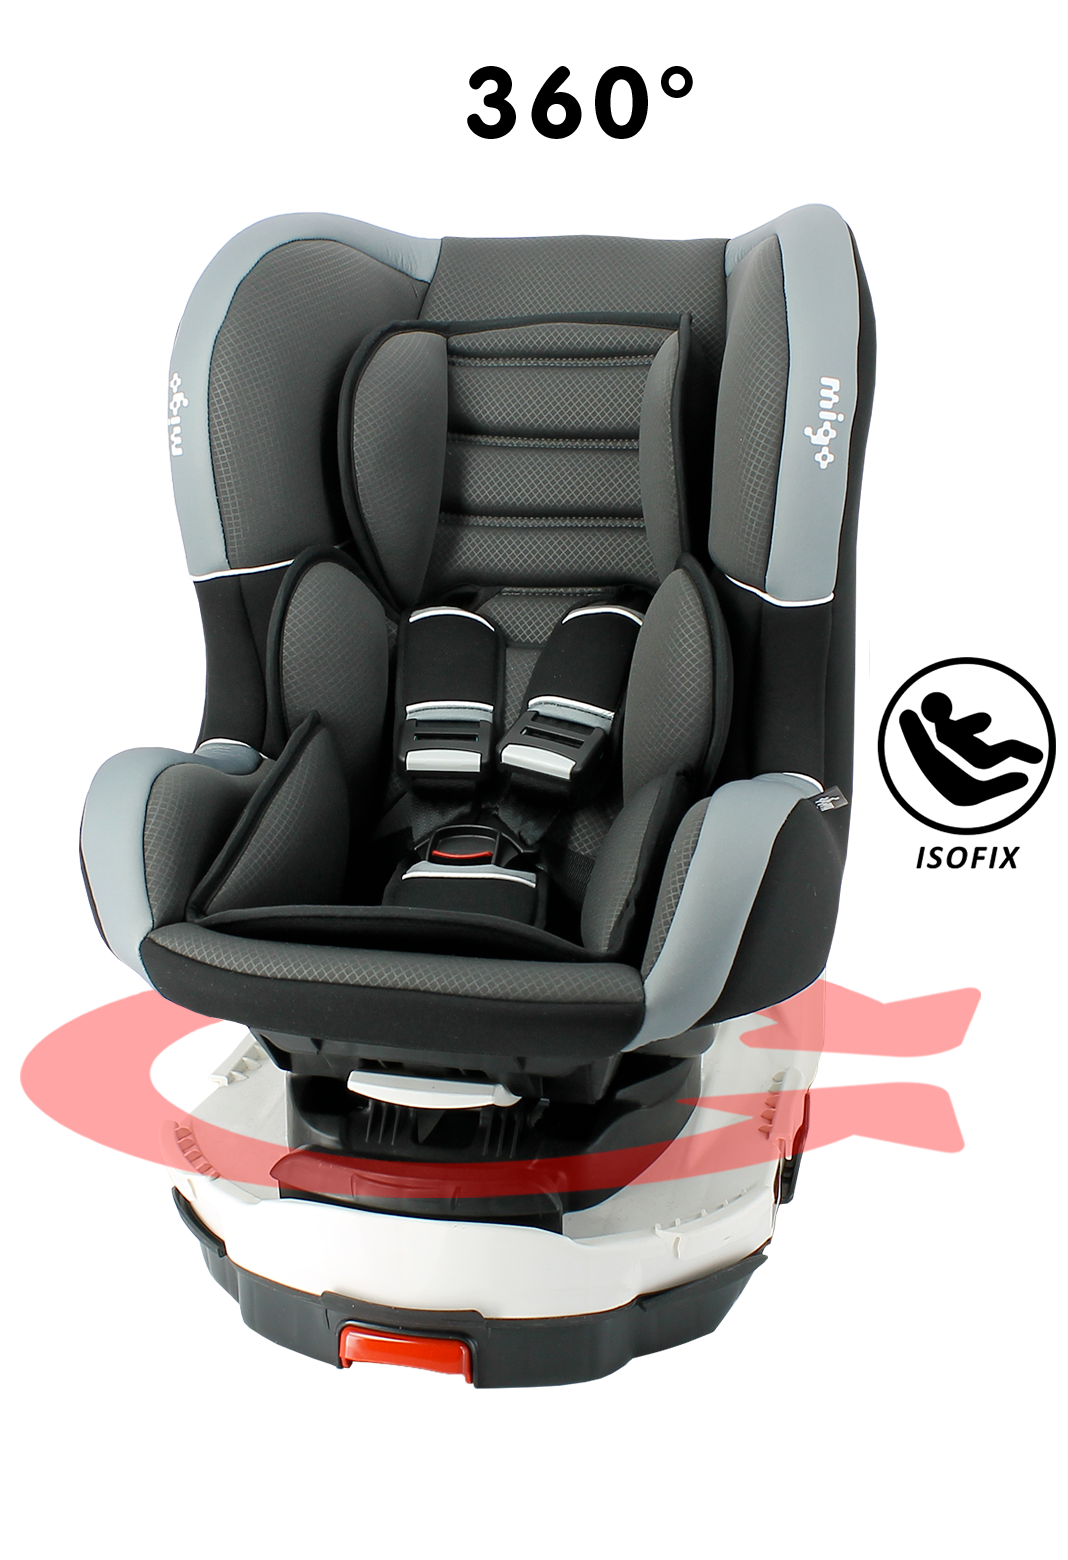 si ge auto pivotant isofix titan grp 0 1 neoshop by migo. Black Bedroom Furniture Sets. Home Design Ideas